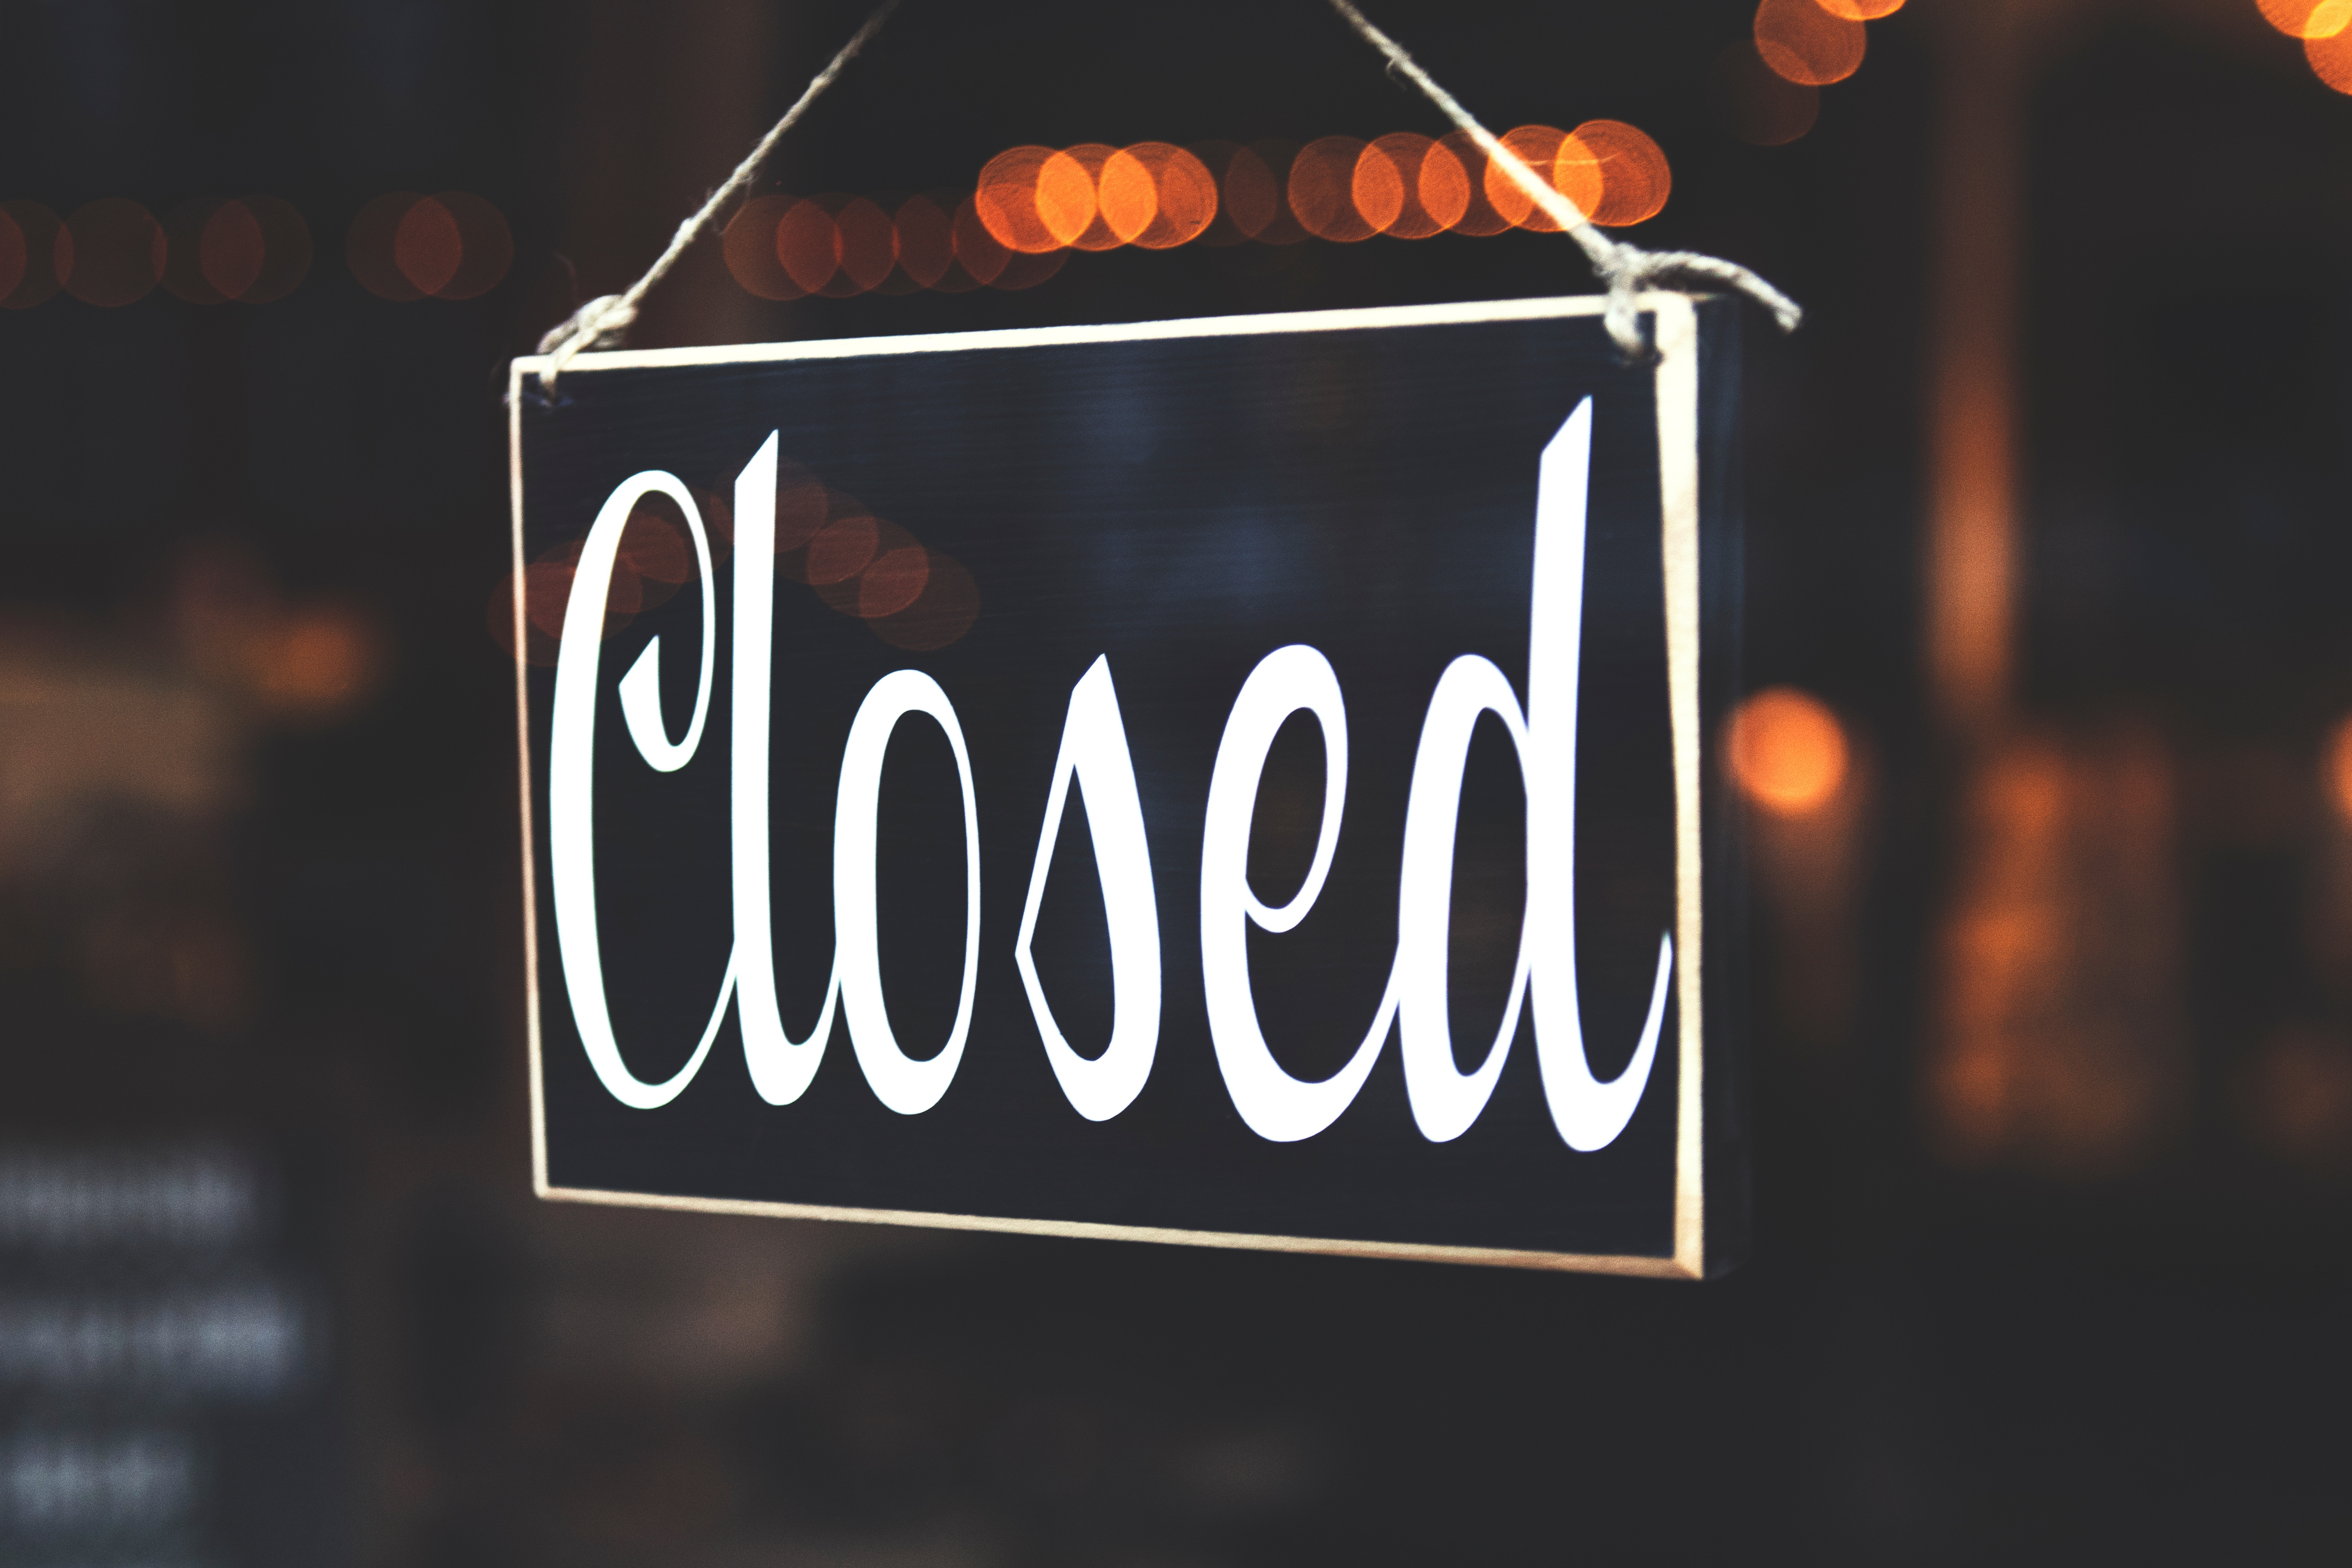 selective-focus-photography-of-closed-signage-942304